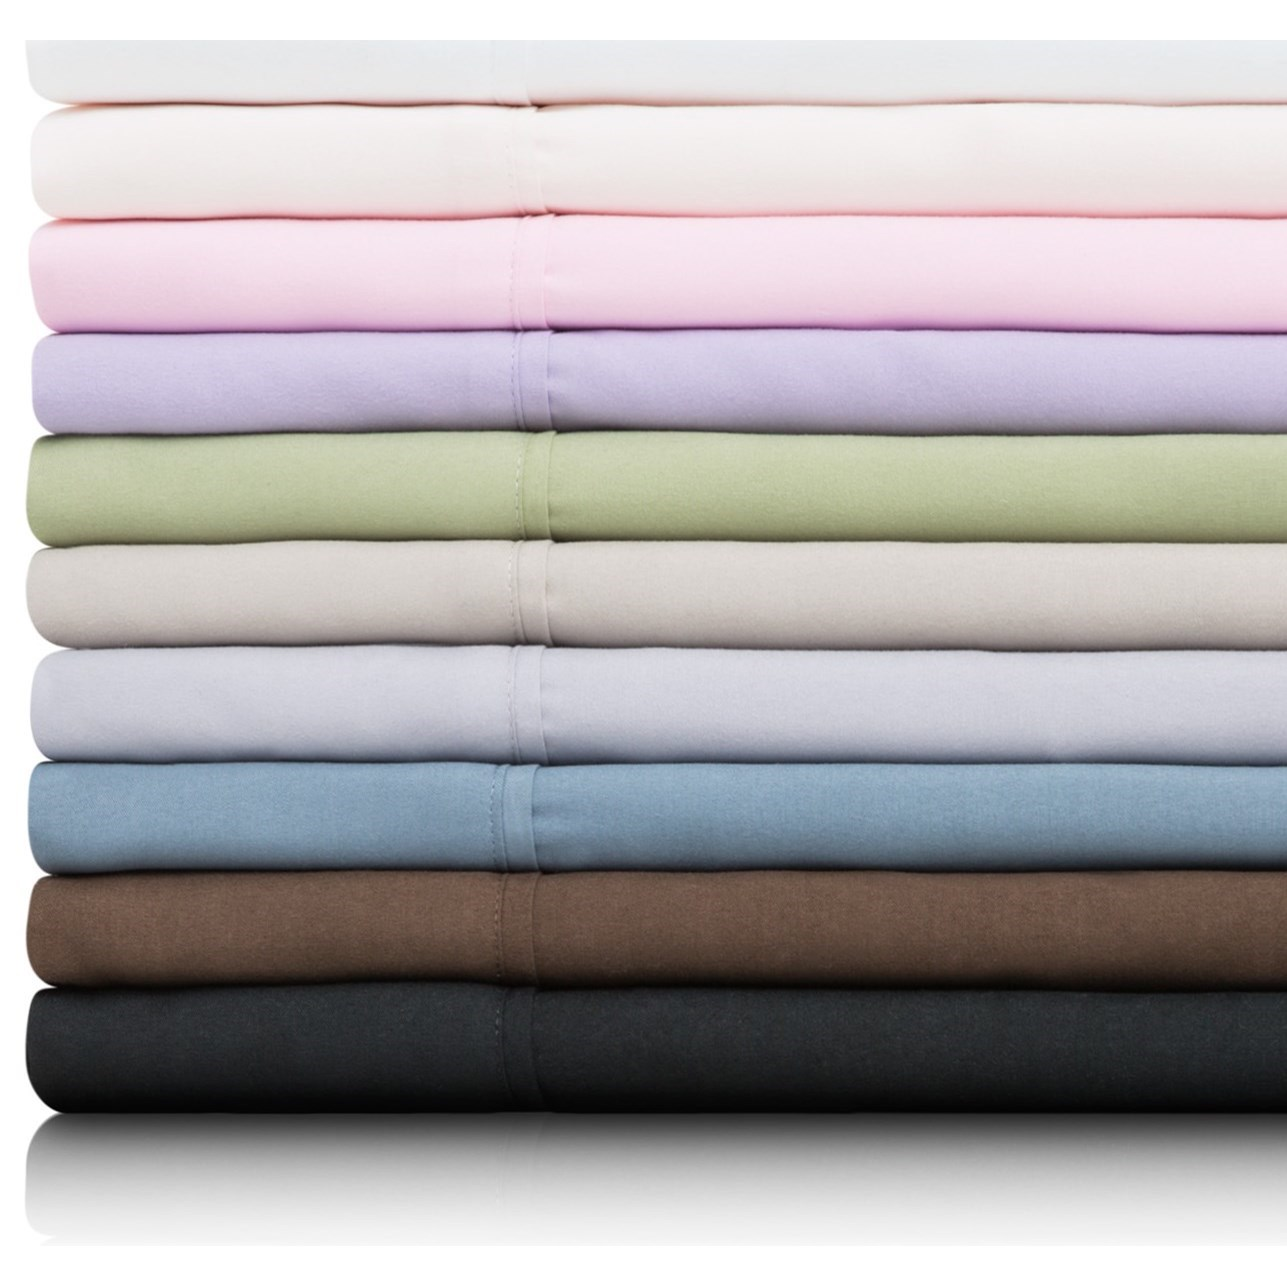 Malouf Brushed Microfiber Cal King Woven™ Brushed Microfiber Sheet Set - Item Number: MA90CKASMS